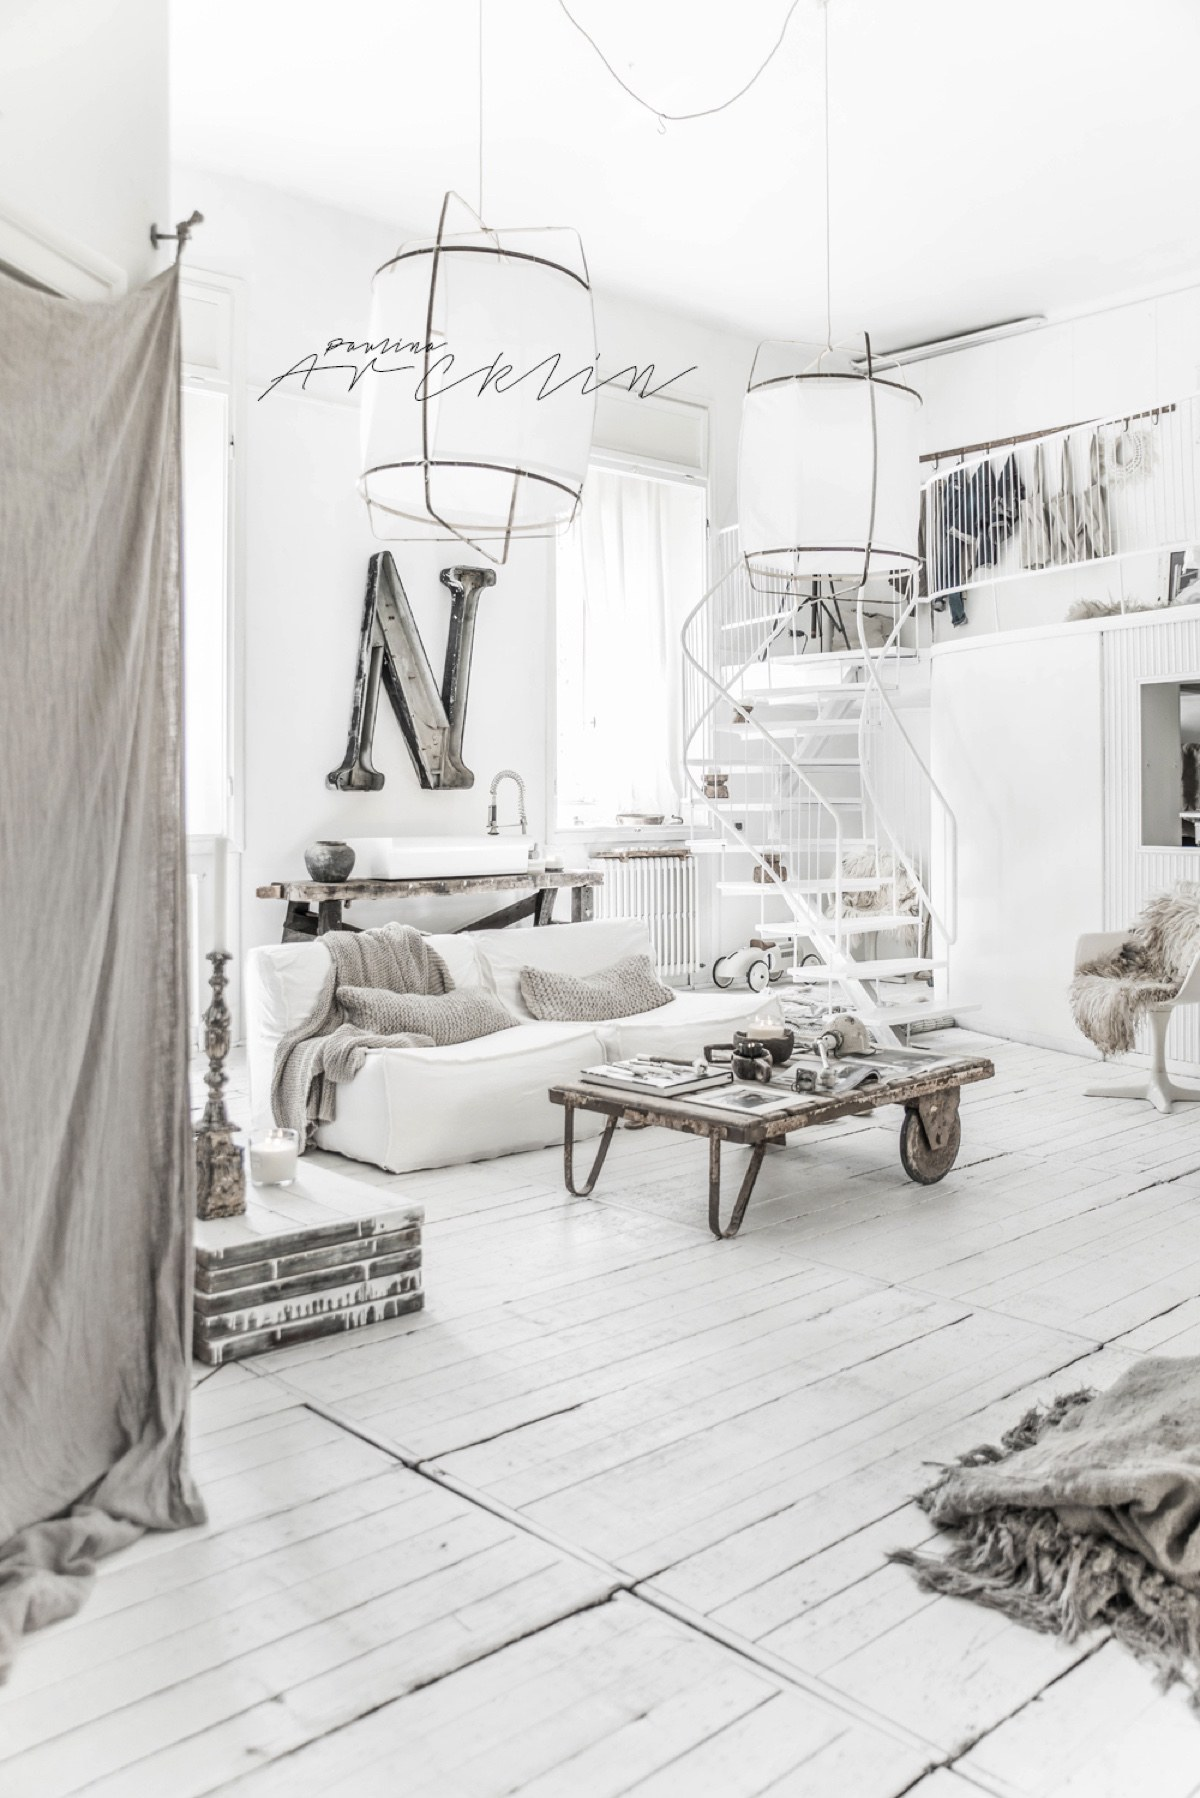 Beautiful All White Interior Inspiration - Cottage chic meets industrial decor in this amazing milan apartment